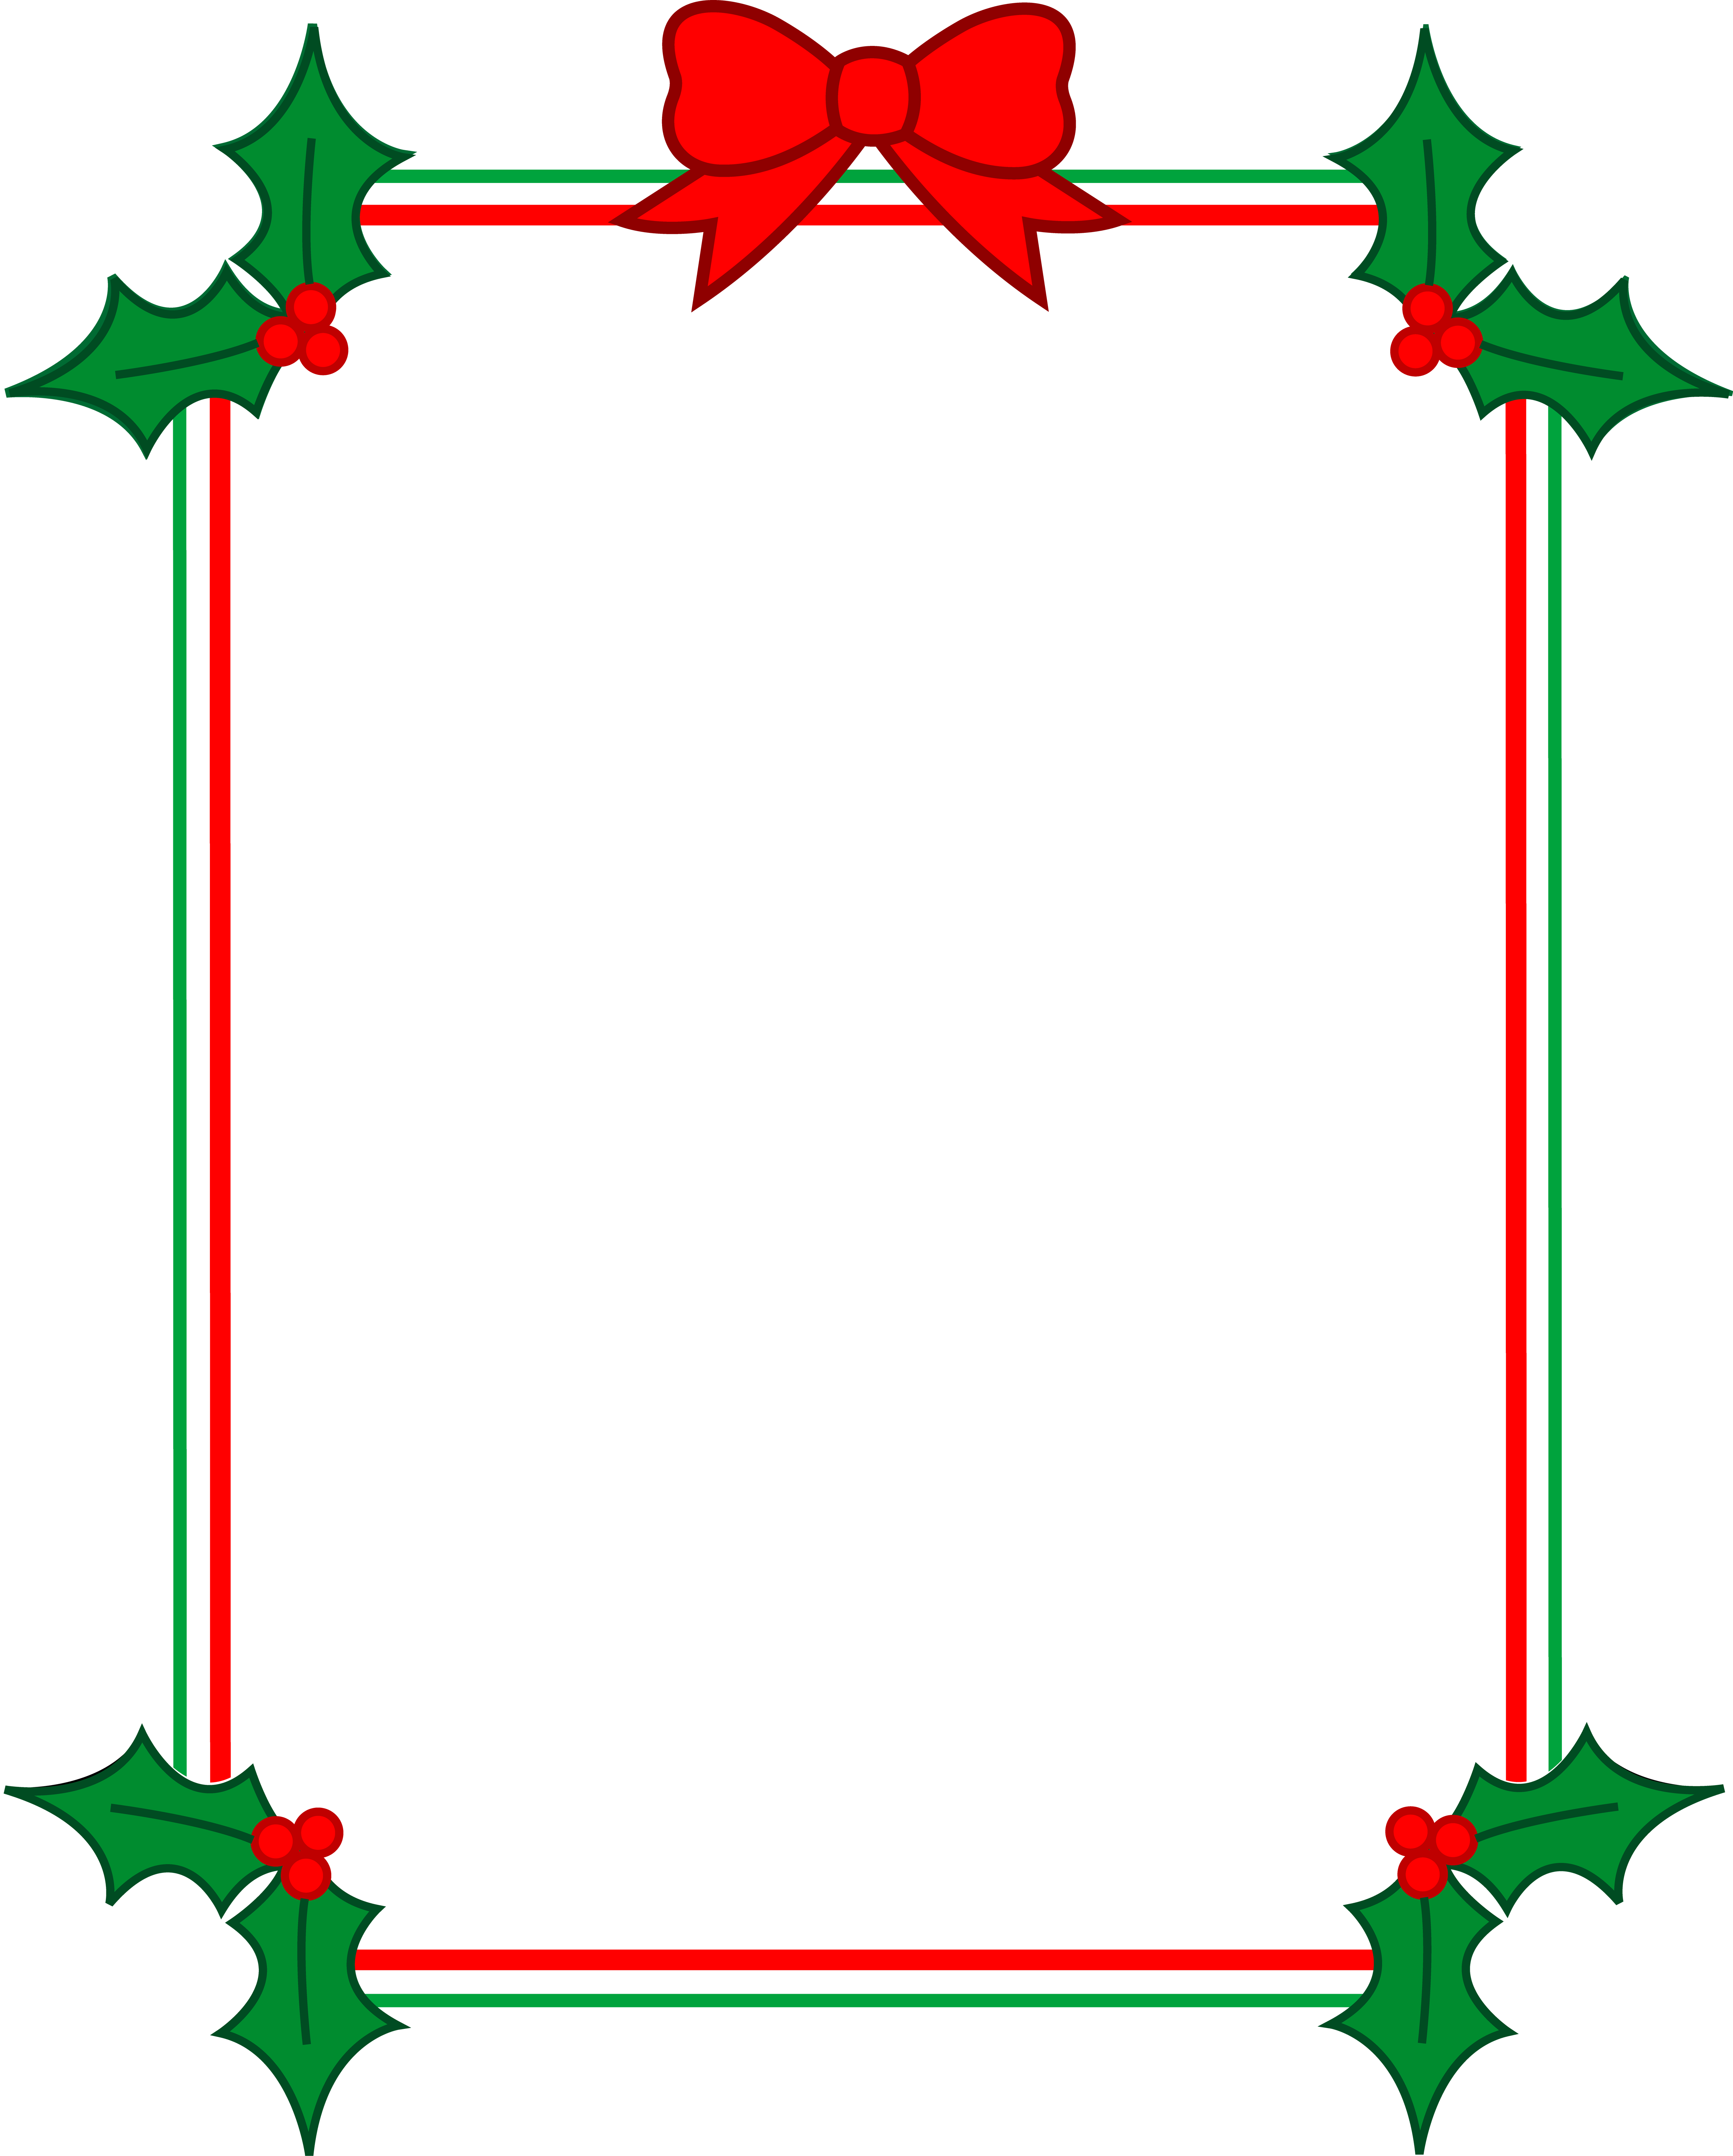 Christmas Frames And Borders Png - ClipArt Best - ClipArt ...